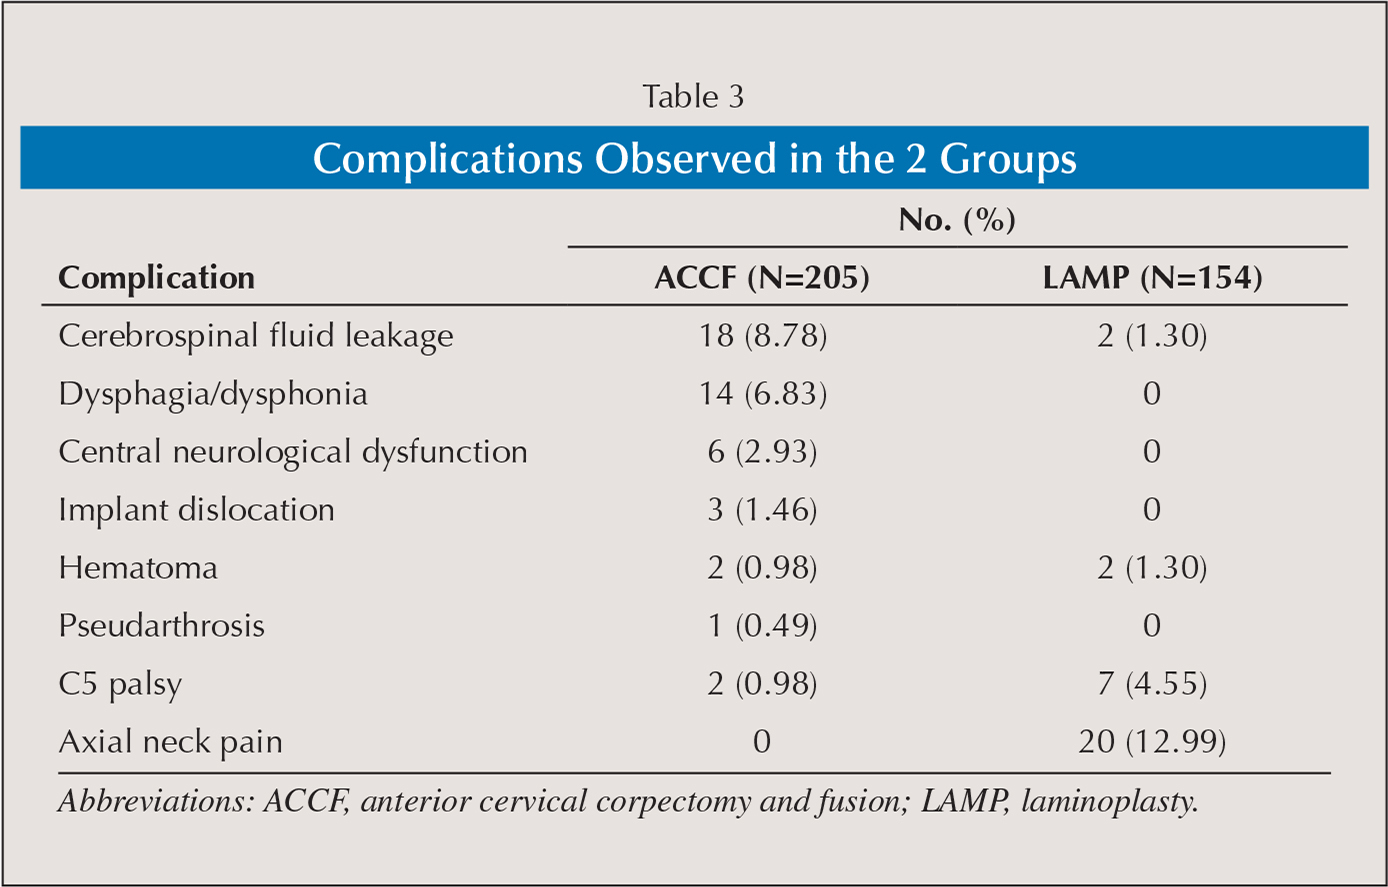 Complications Observed in the 2 Groups